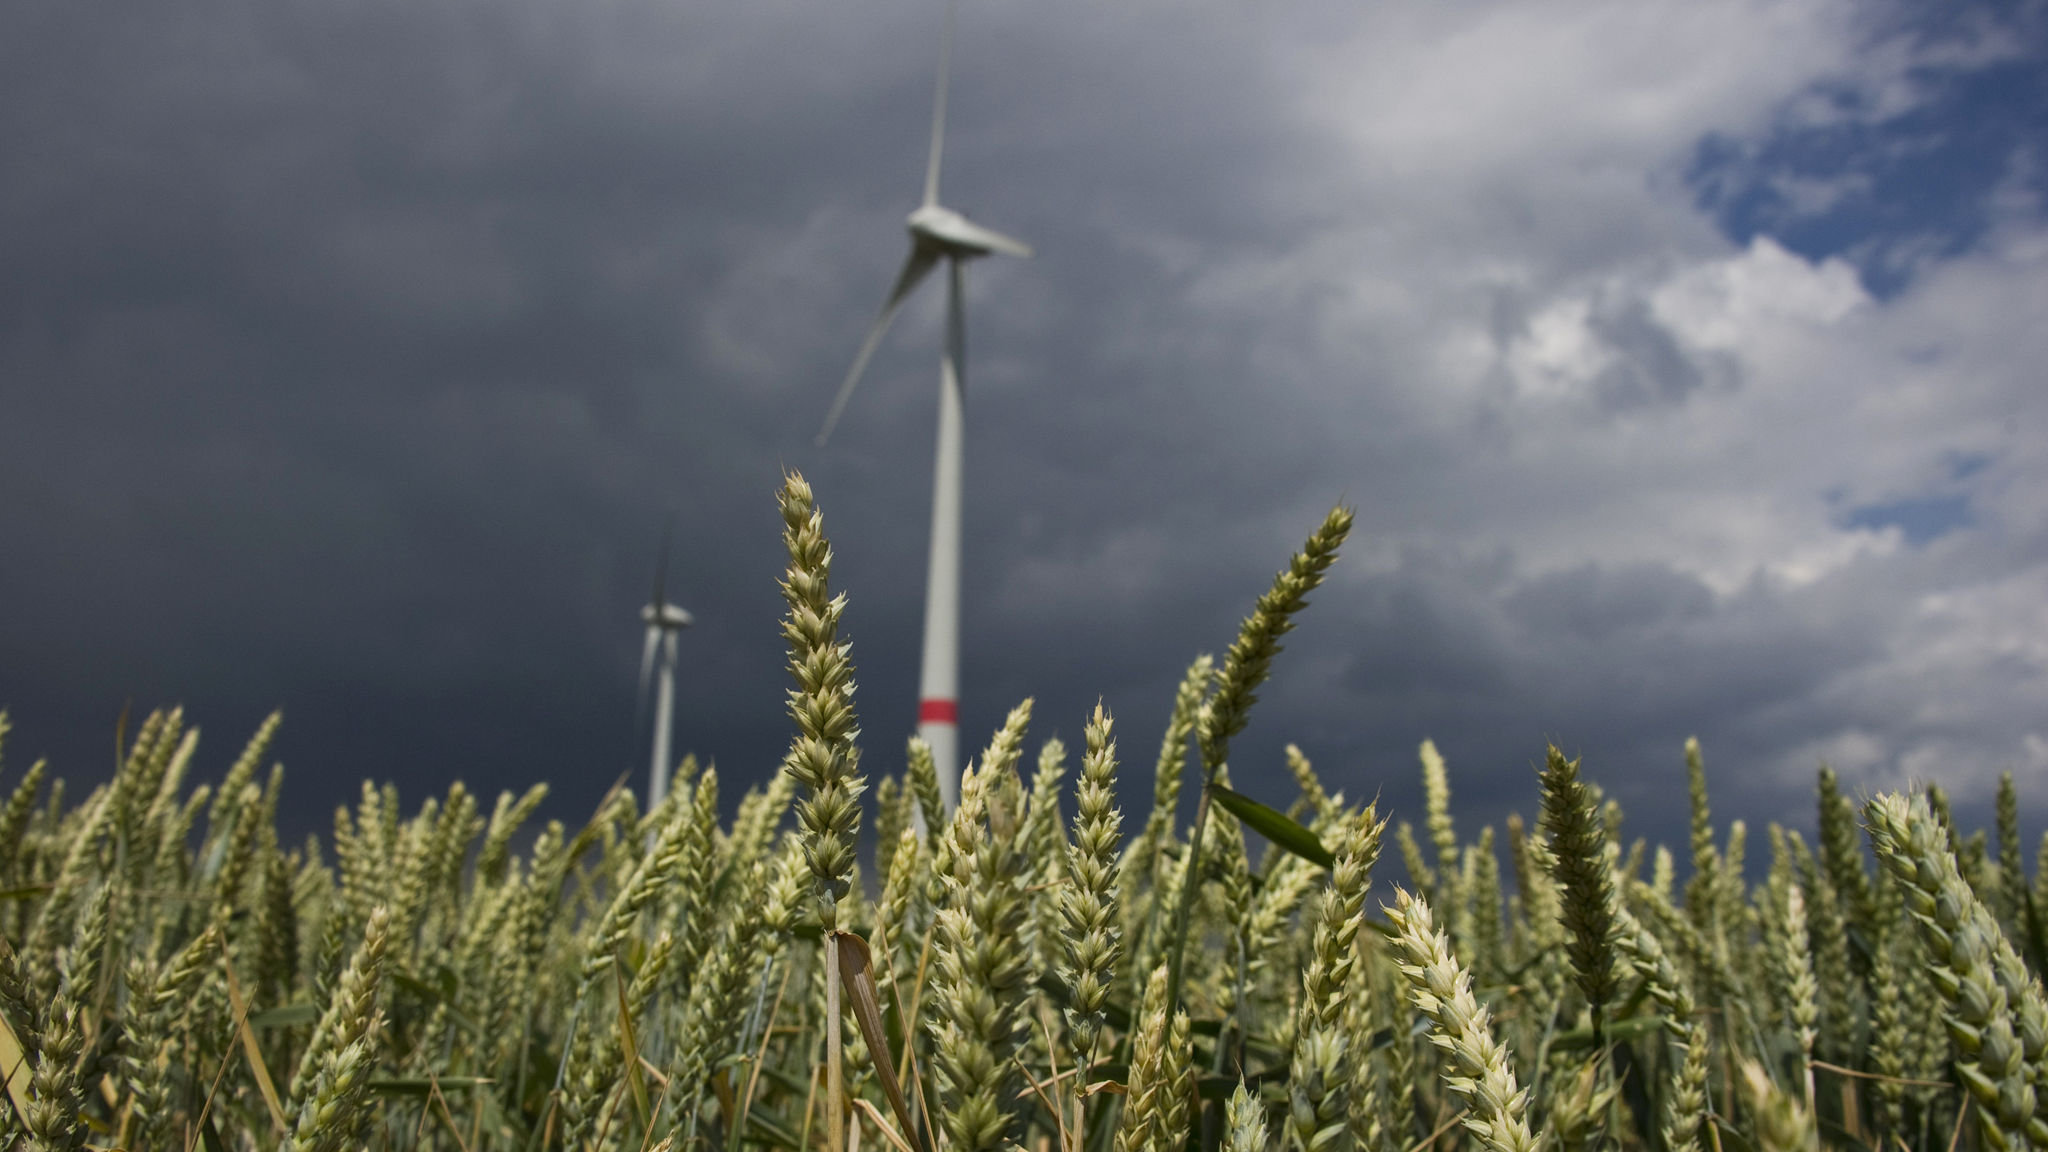 Decline in new German wind farms sparks concern | Financial